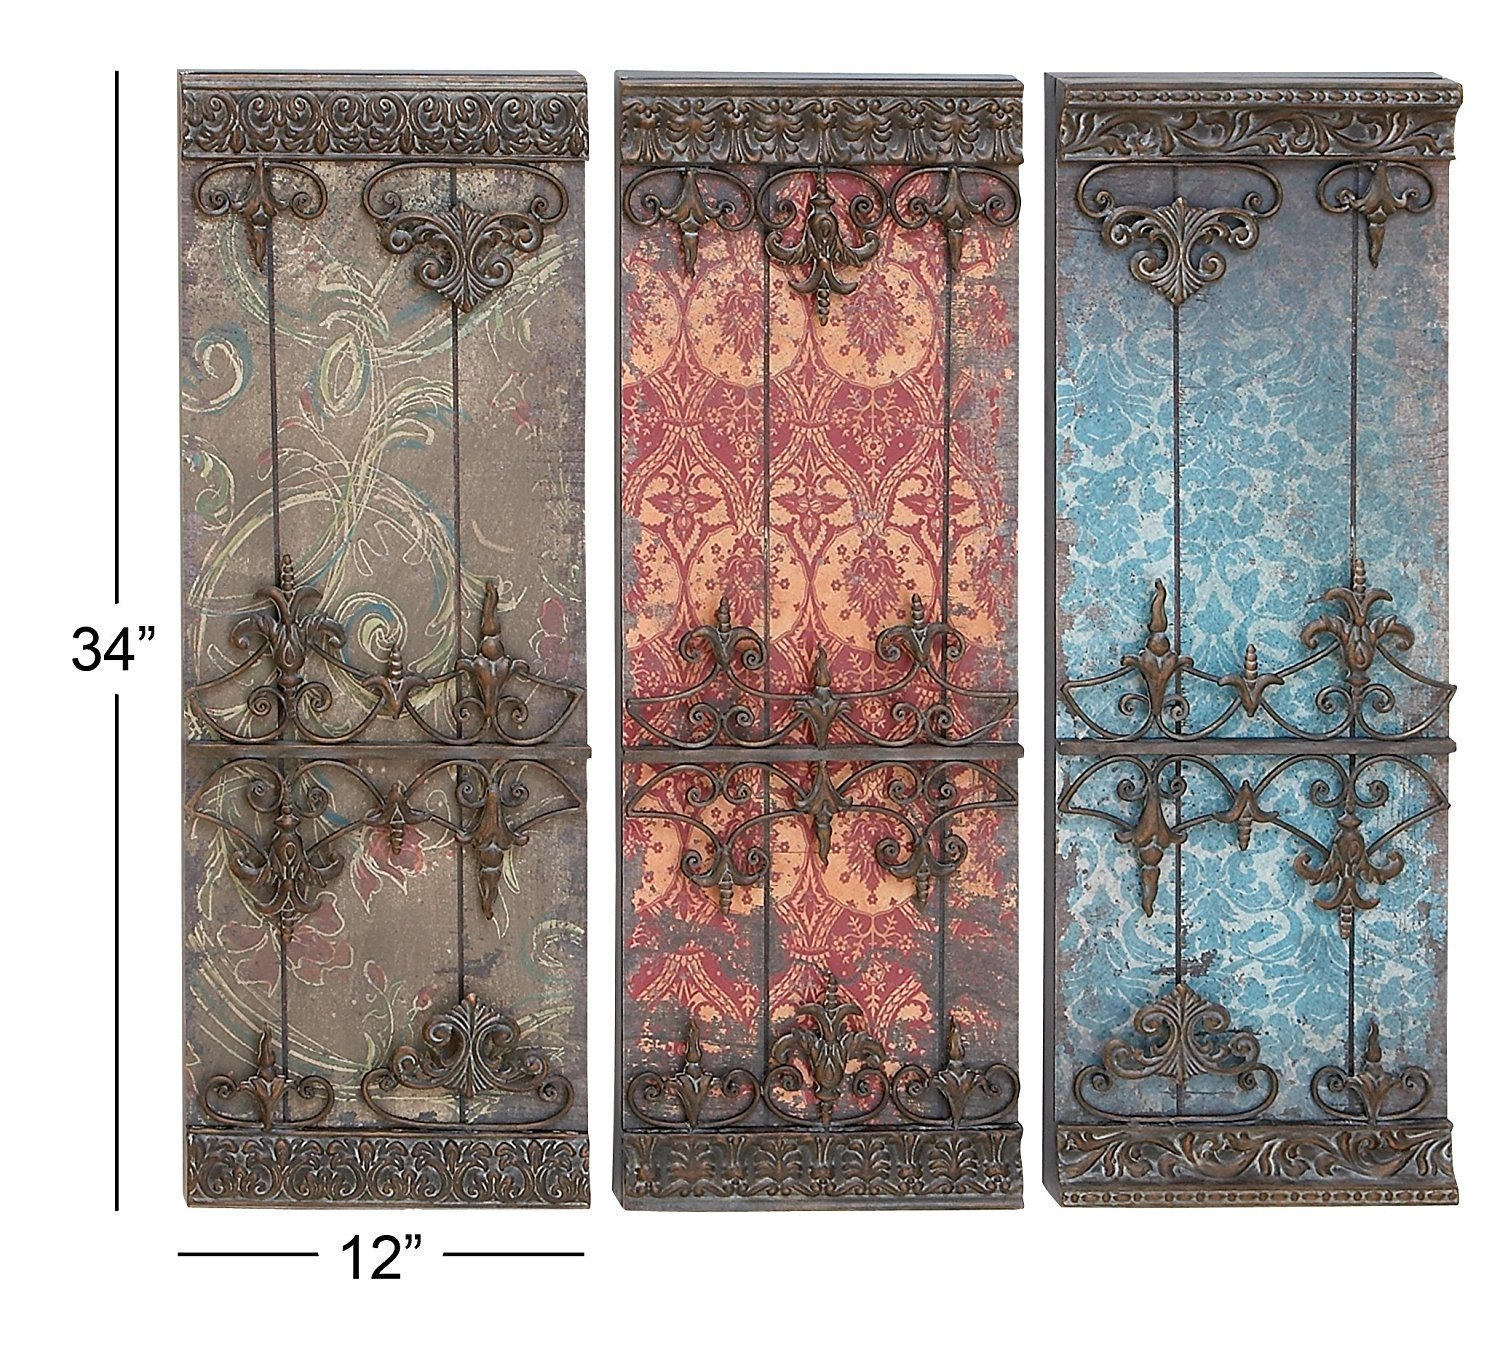 Deco 79 Metal Plaque Wall Decor 34 By 12 Inch 3 Assorted Colors